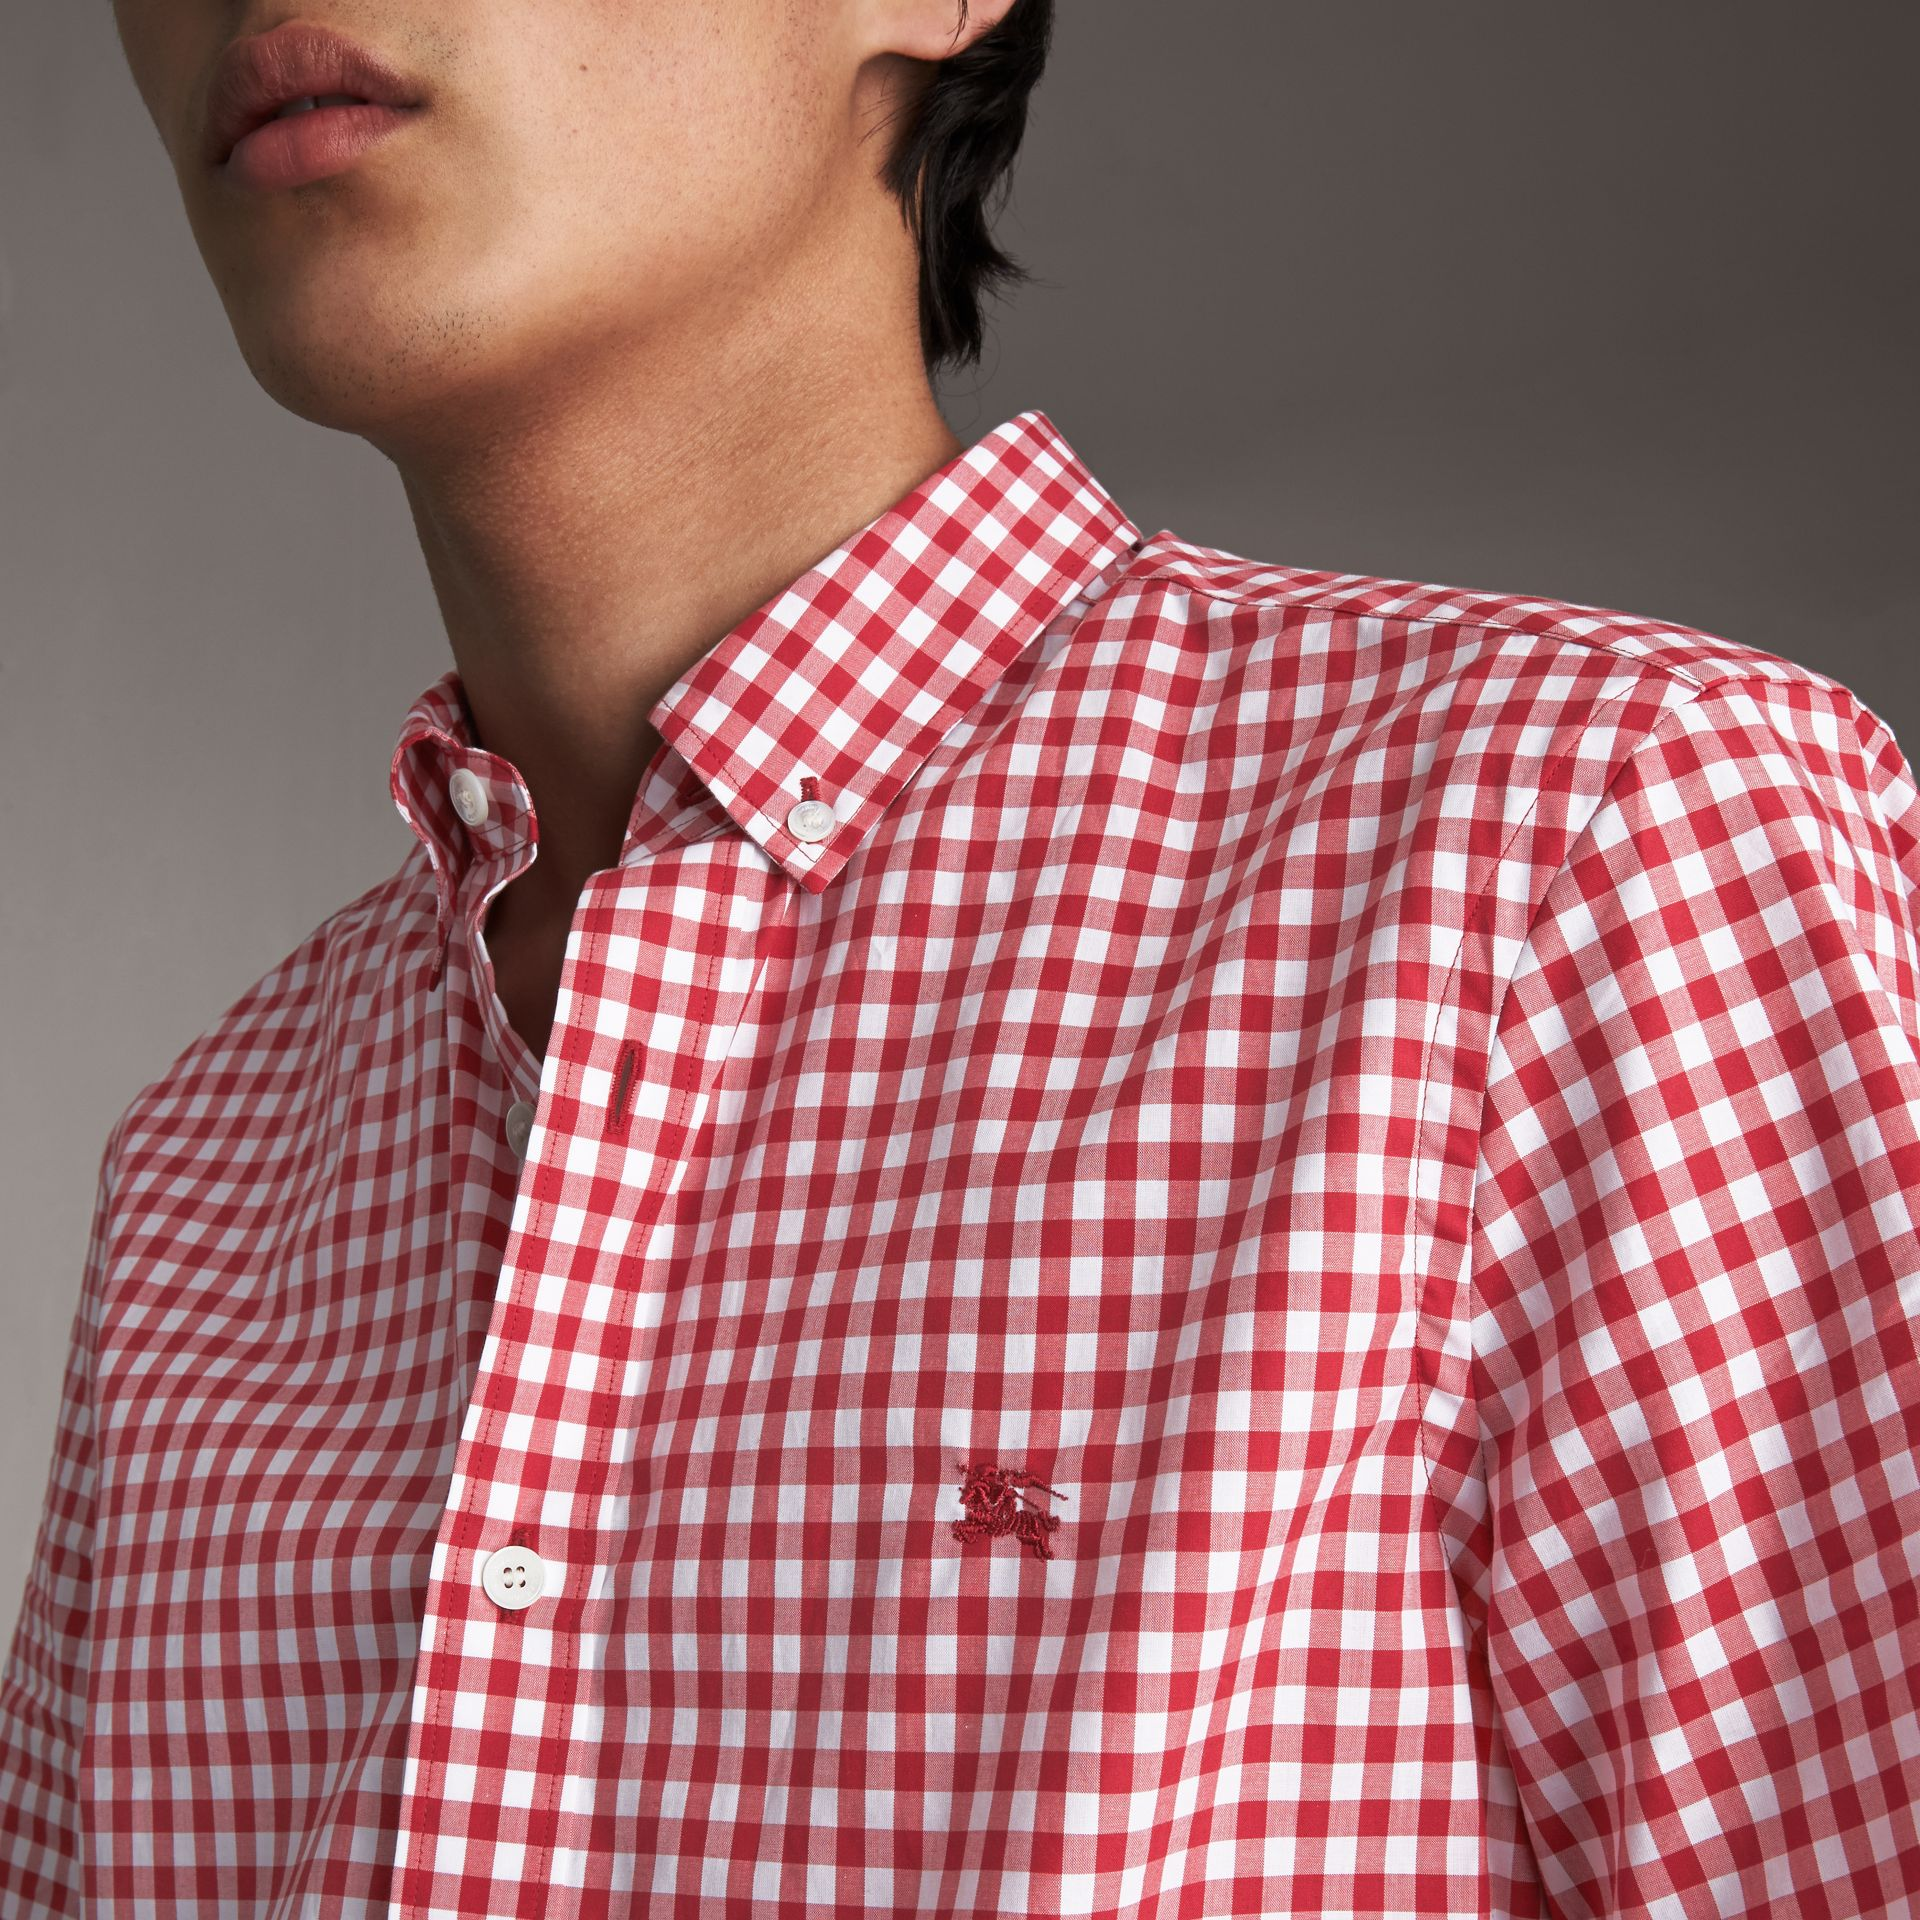 Short-sleeve Button-down Collar Cotton Gingham Shirt in Parade Red - Men | Burberry - gallery image 2